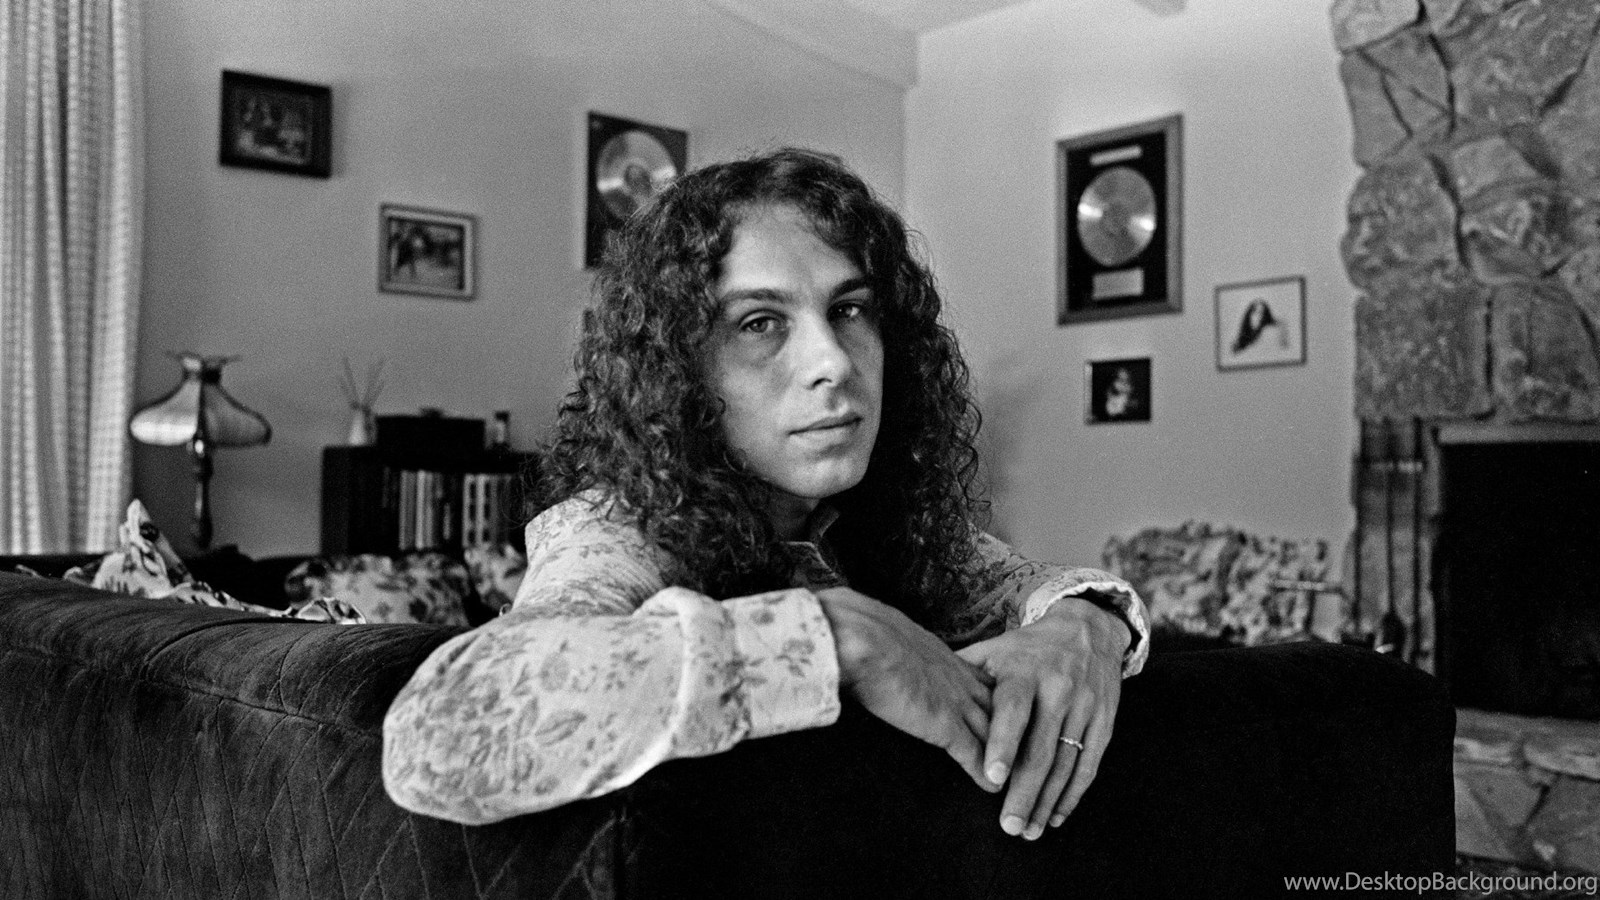 Hd Wallpapers Rock Bands Ronnie James Dio Heavy Metal Ju Wallpapers Desktop Background